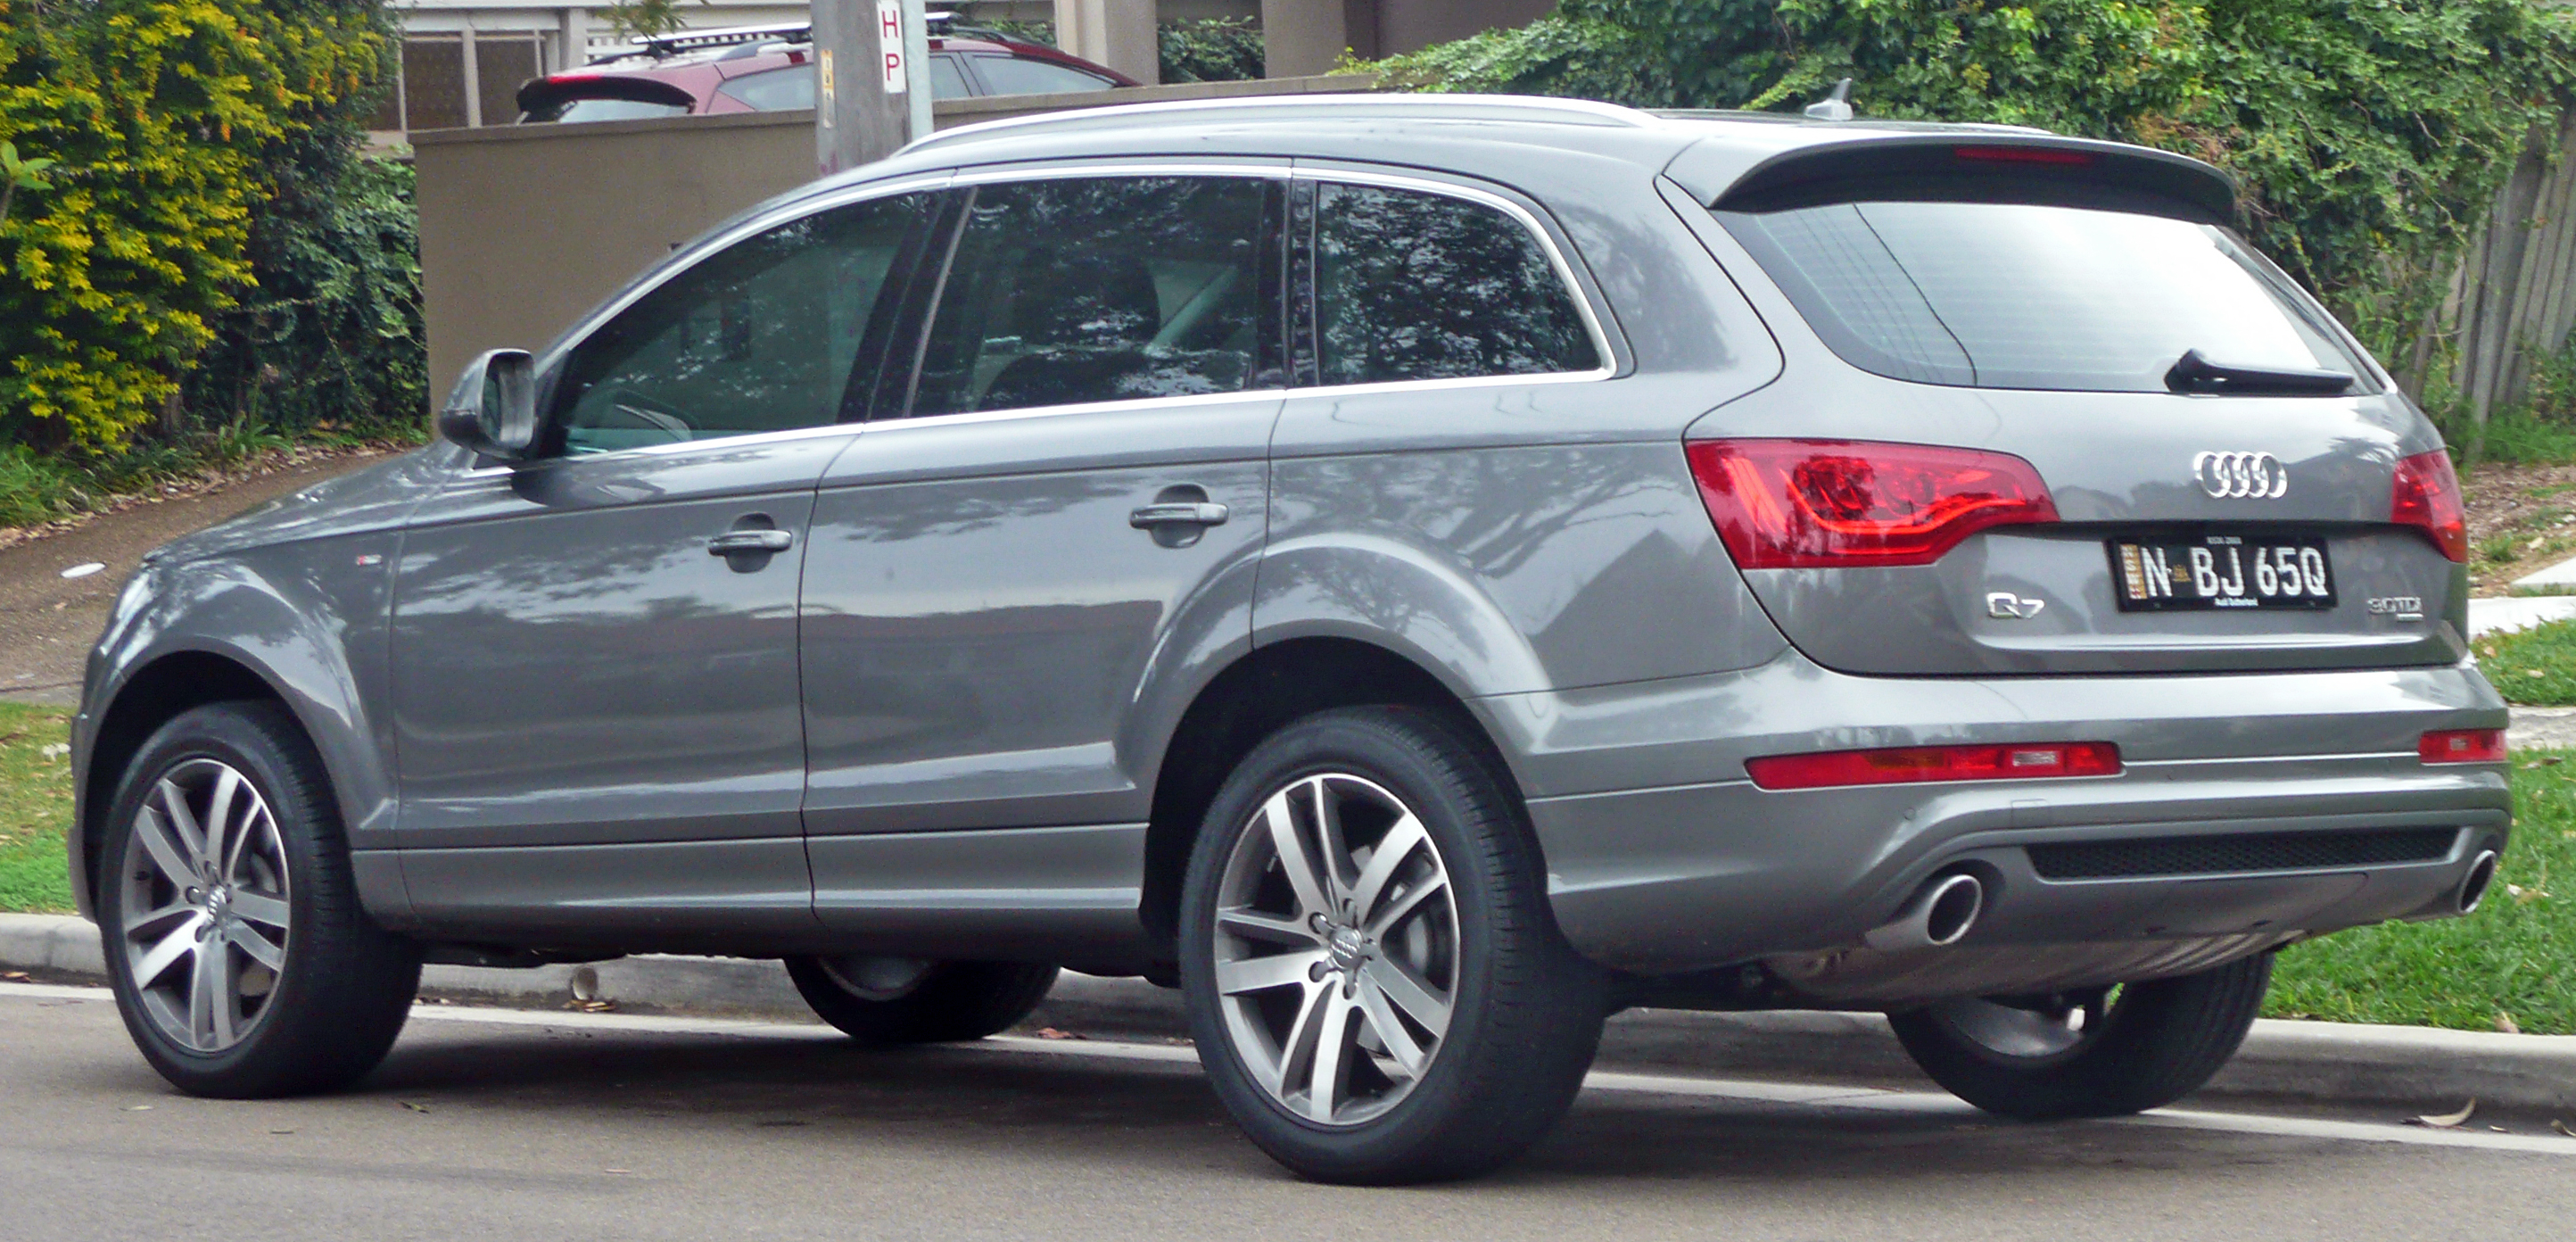 file 2009 2010 audi q7 3 0 tdi quattro wikipedia. Black Bedroom Furniture Sets. Home Design Ideas